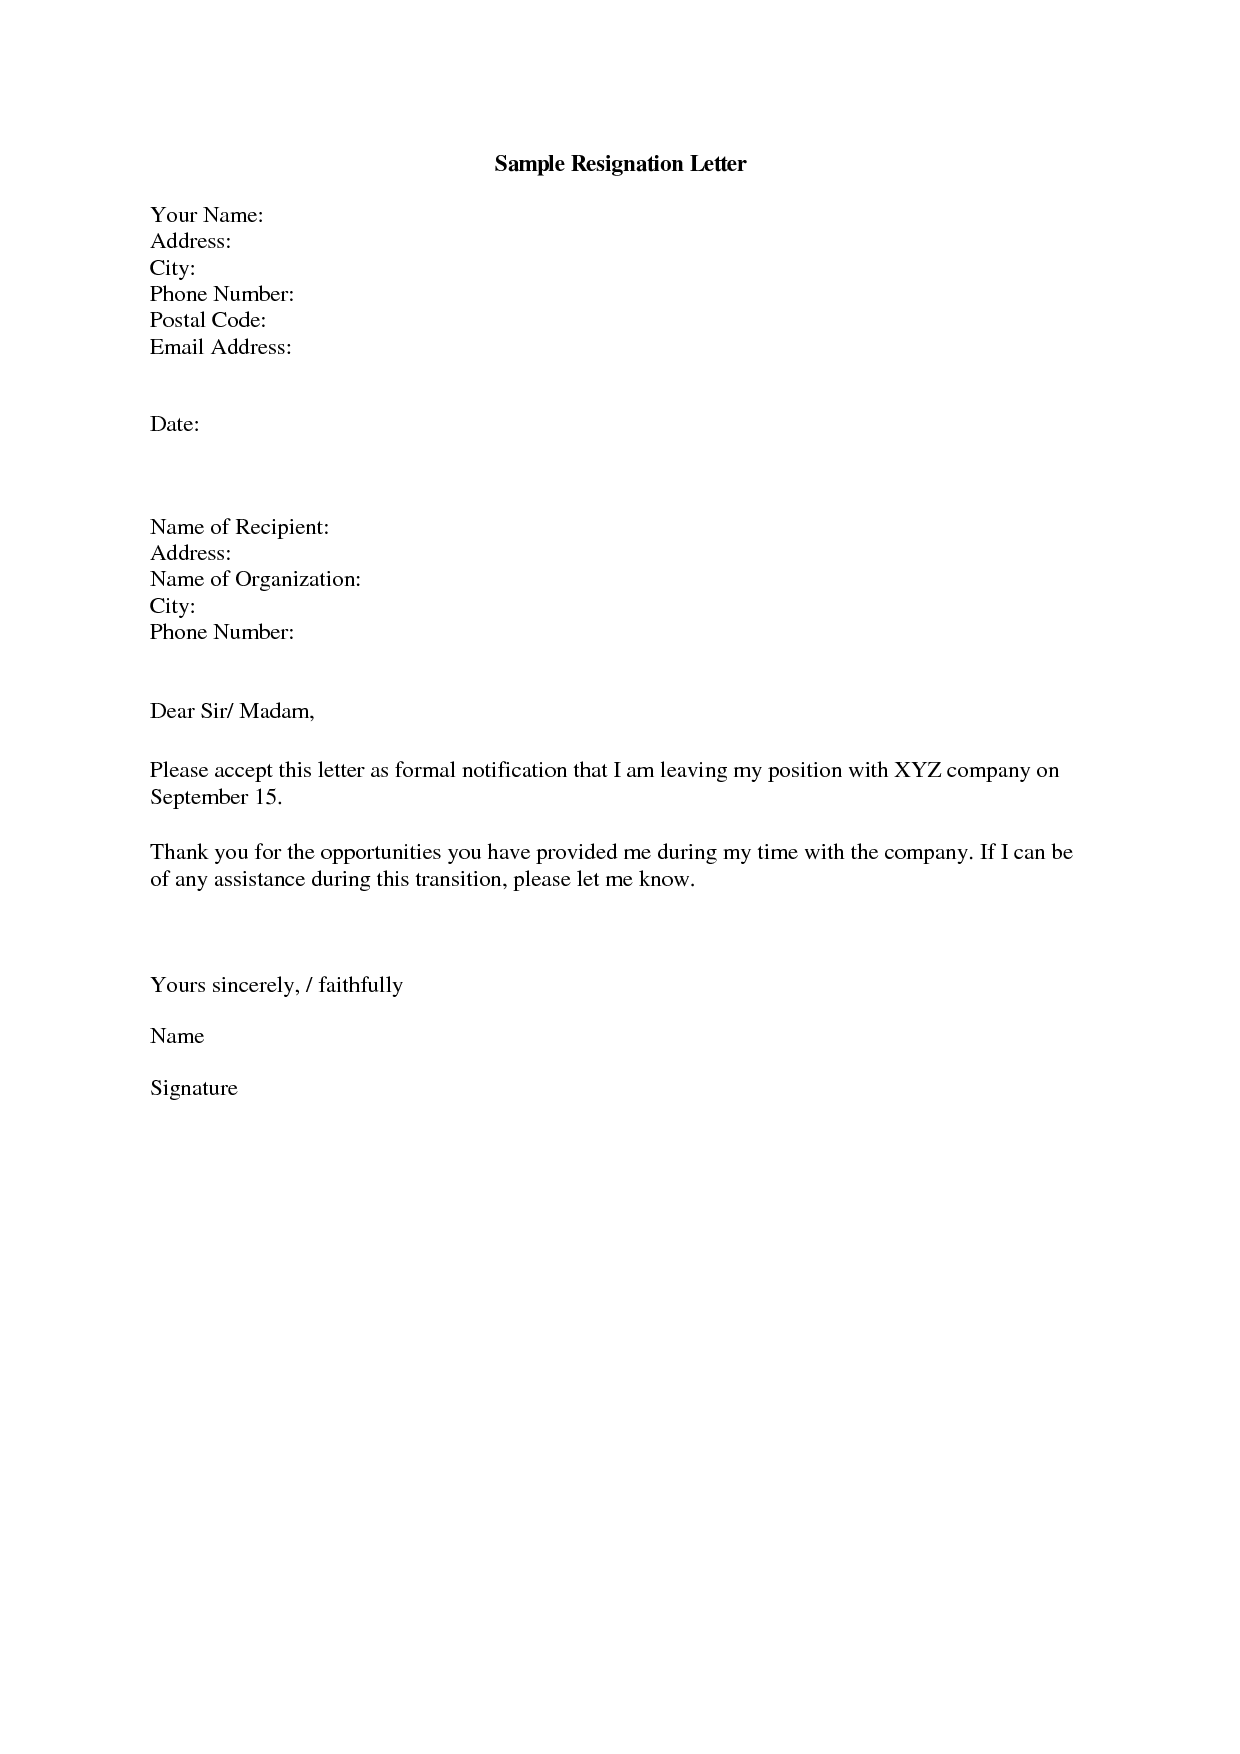 How to Write Easy Simple Resignation Letter Sample ...